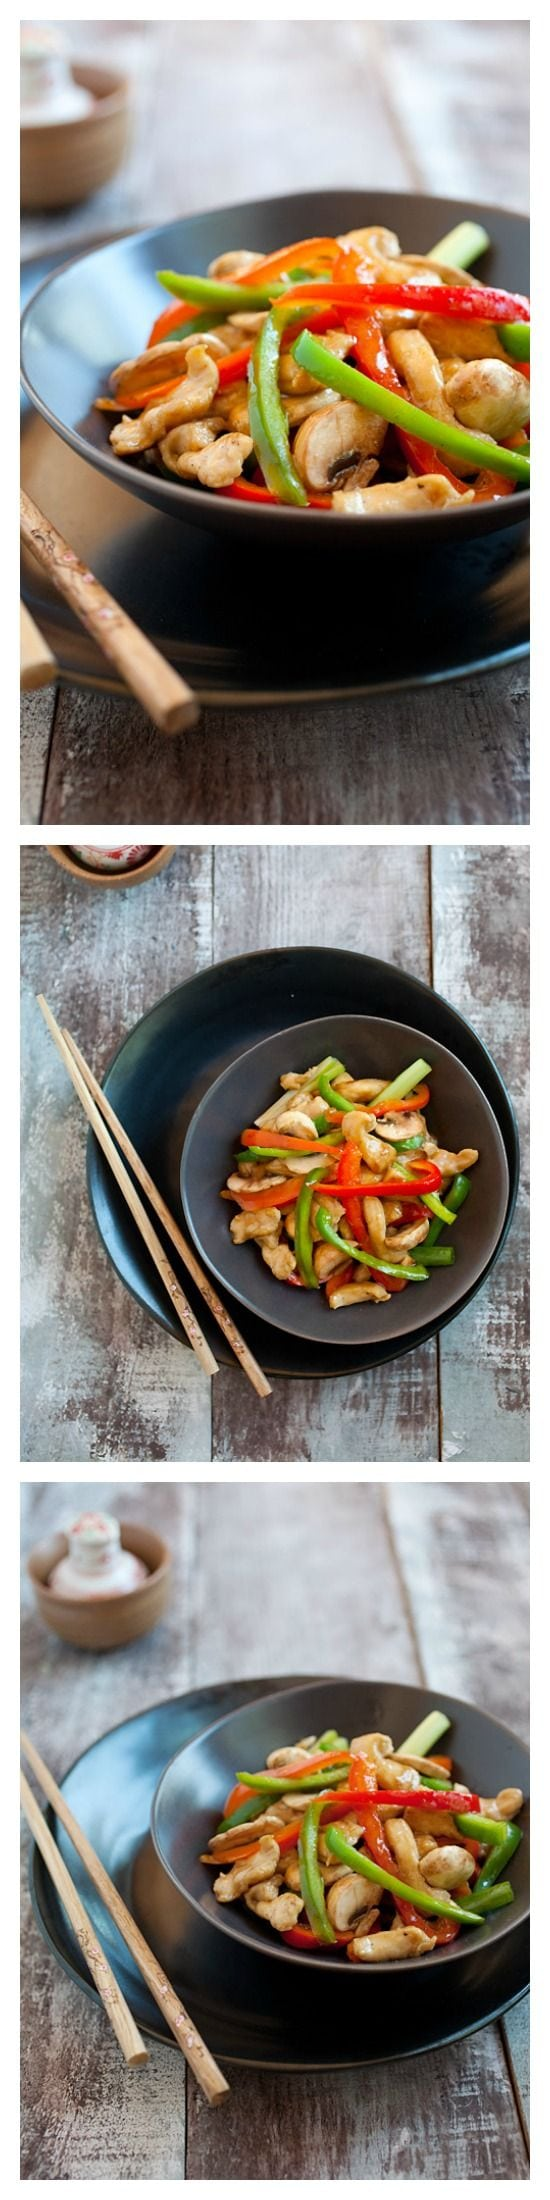 Bell Peppers Chicken Recipe. Quick, easy, and healthy chicken stir-fry with red and green bell peppers and a Chinese brown sauce. SUPER YUM!   rasamalaysia.com